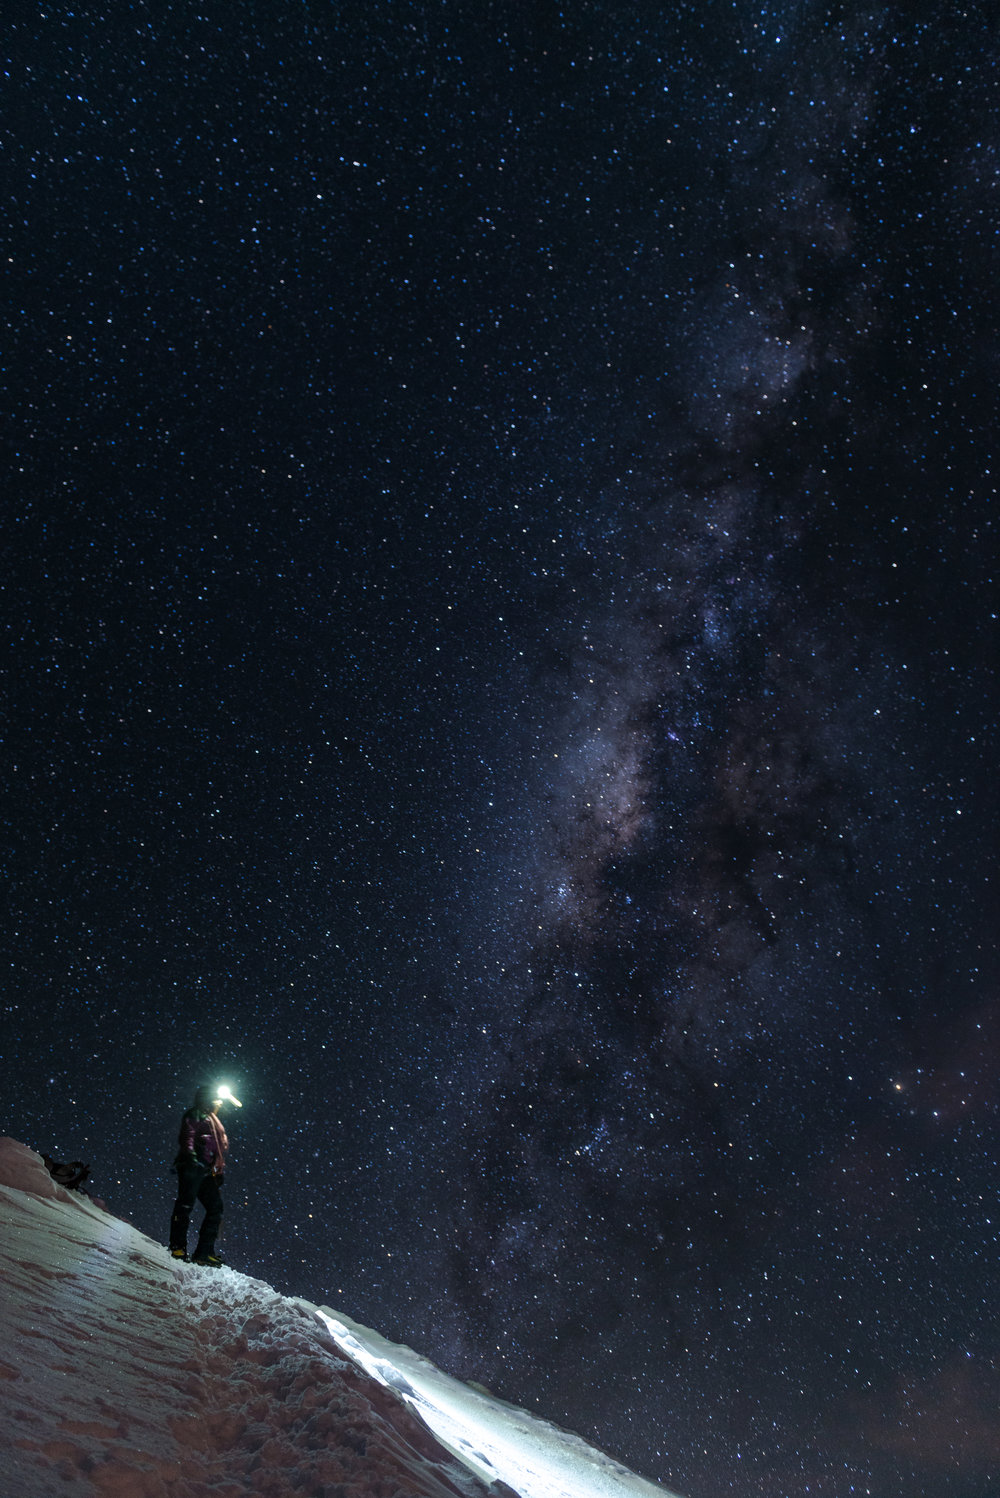 The milkyway in Cotopaxi